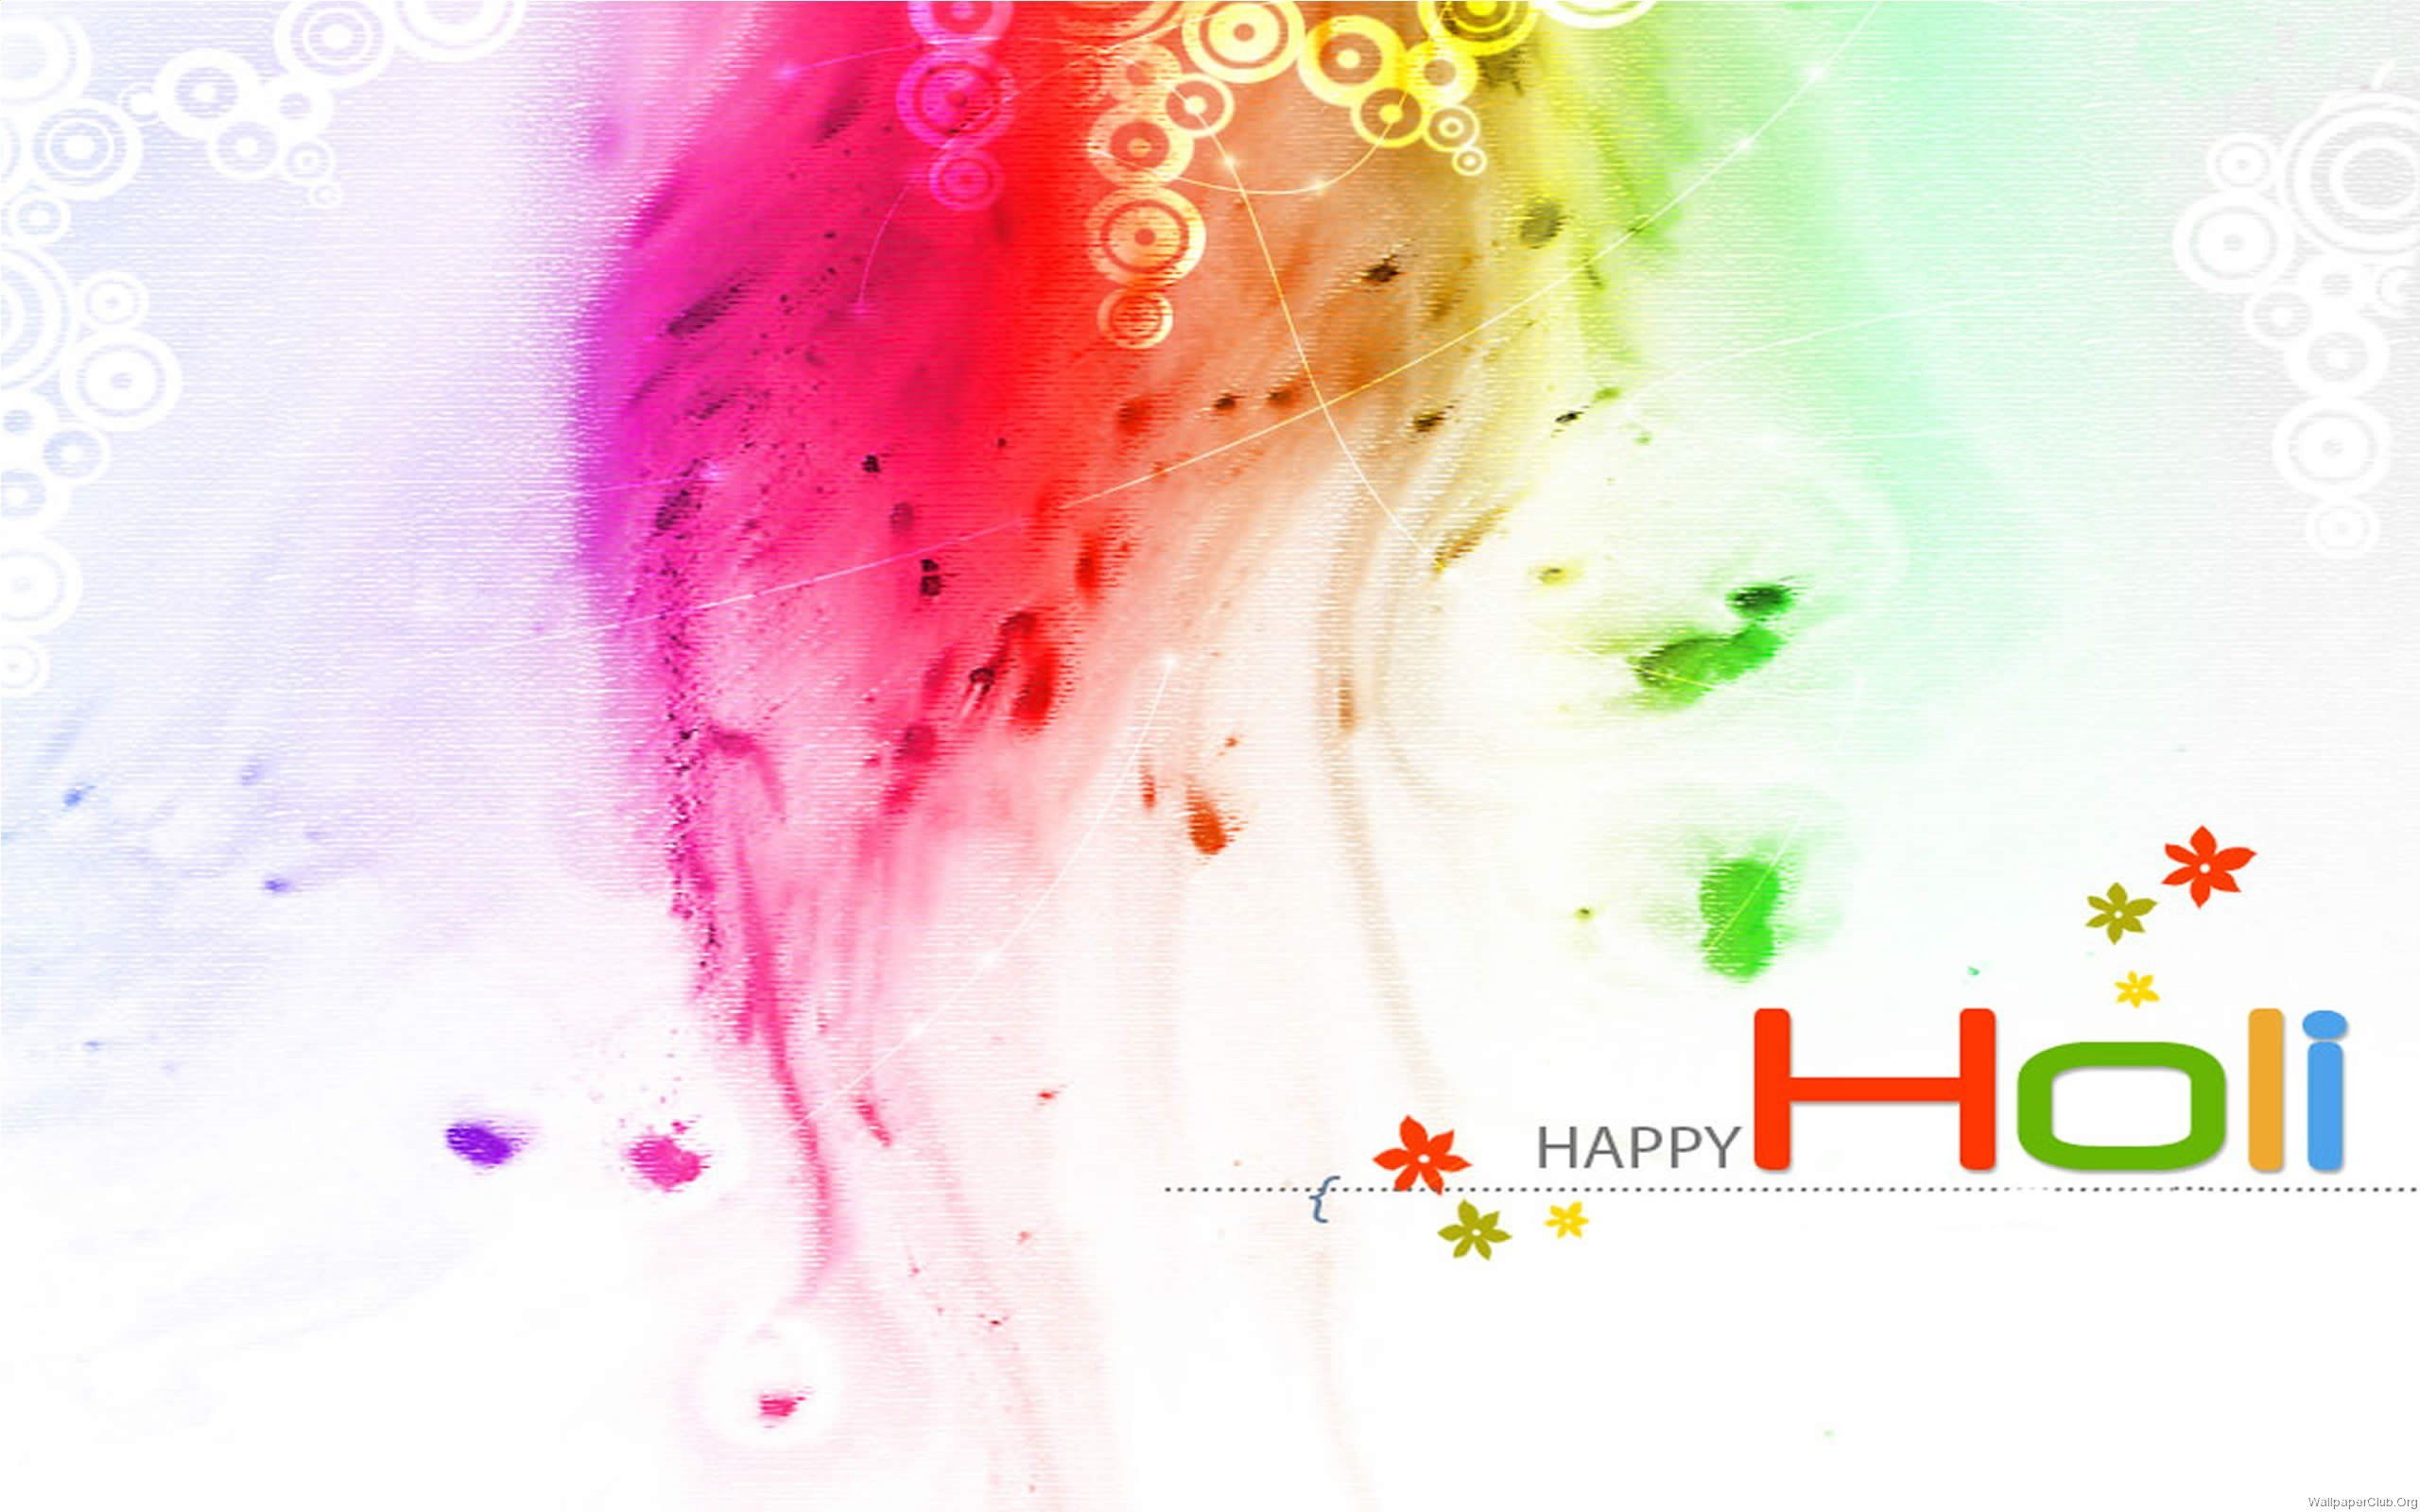 3D-Happy-Holi